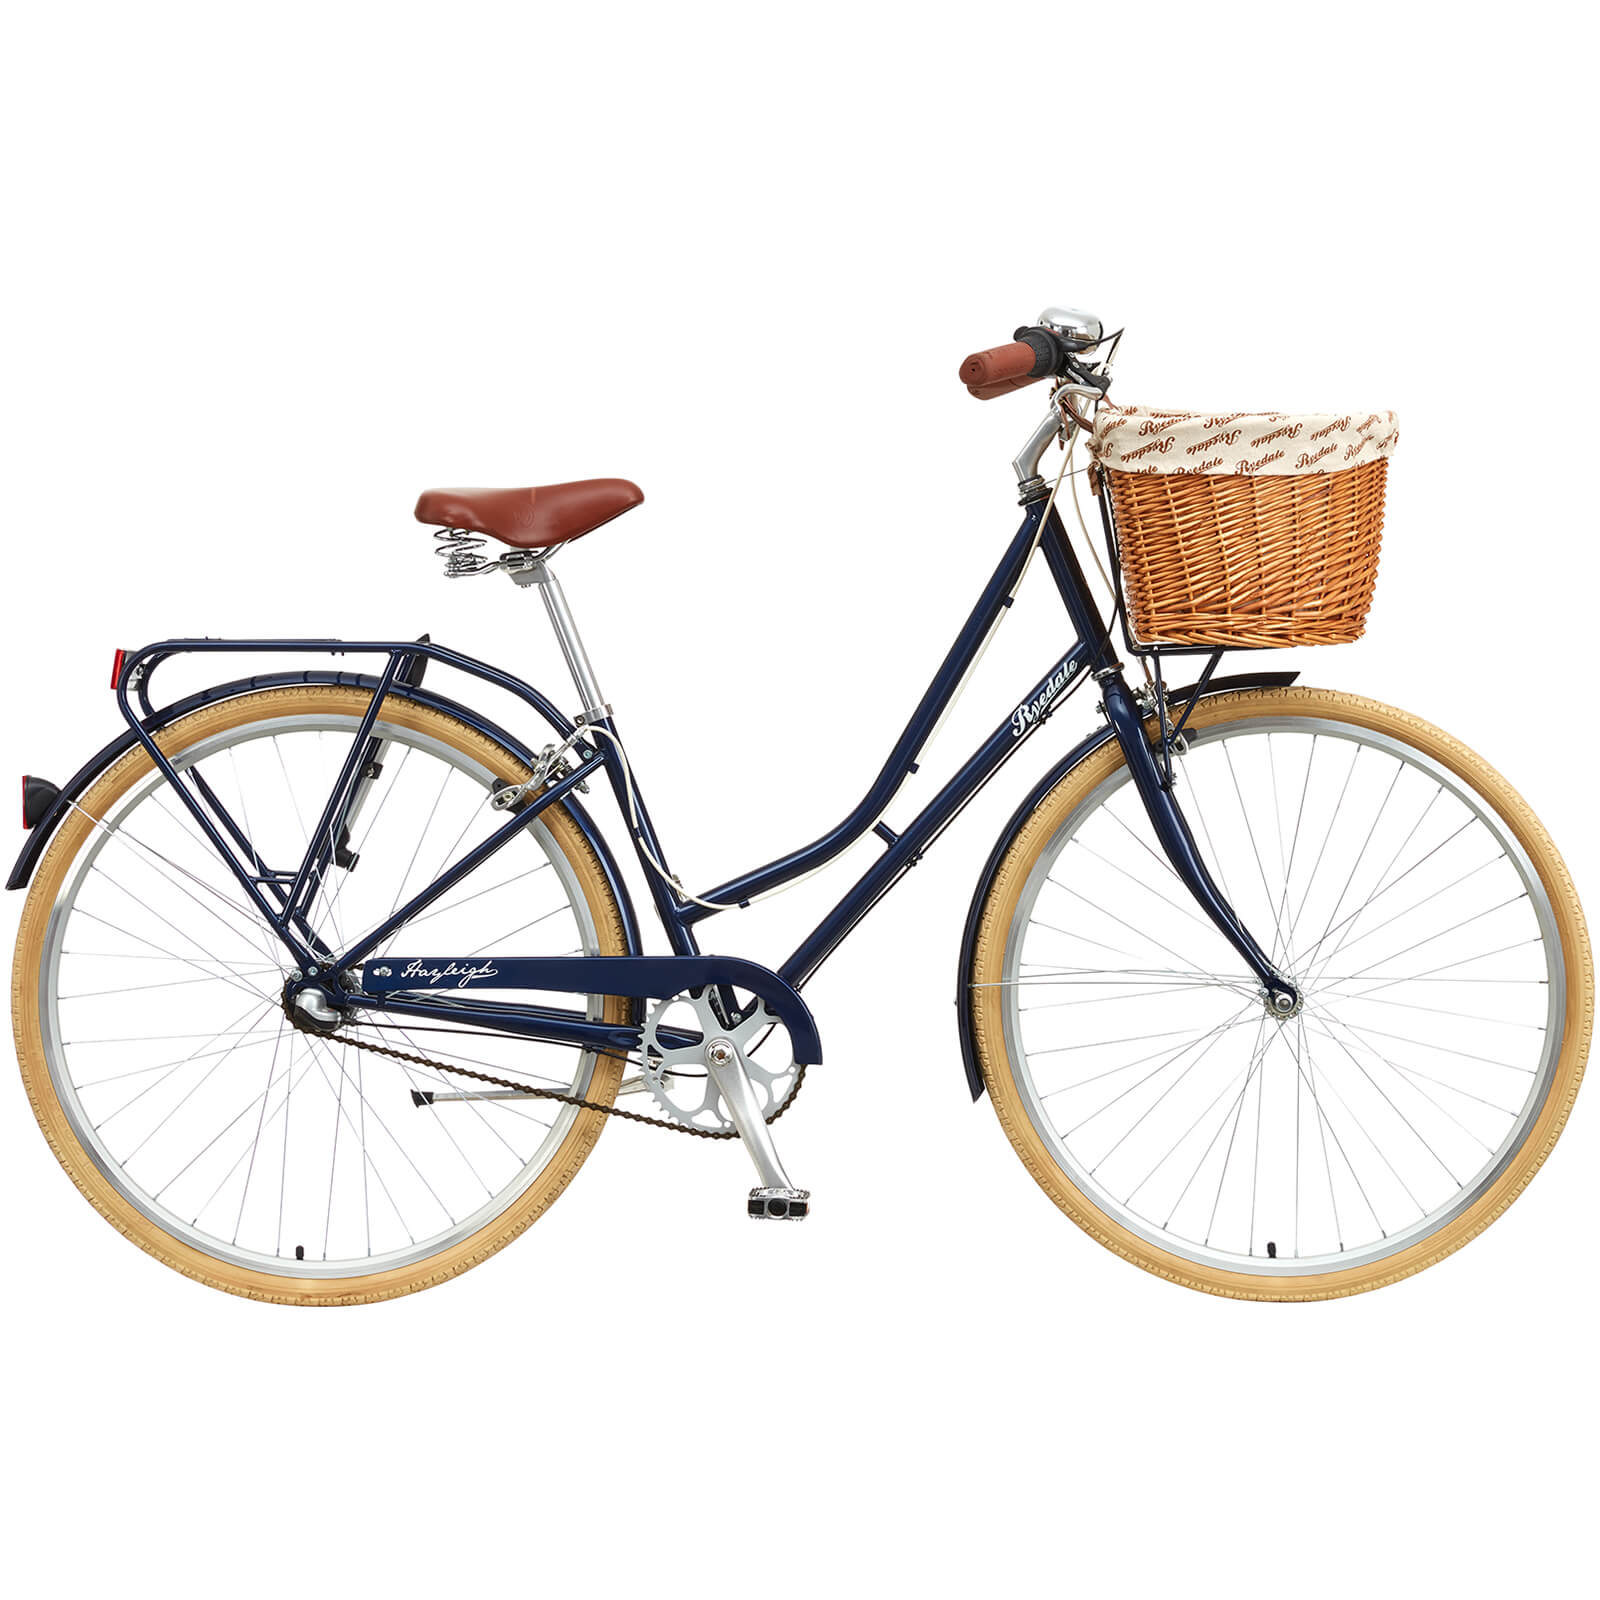 Ryedale Hayleigh 700C Blueberry Ladies Traditional 3 Speed Bike (2017 Model)